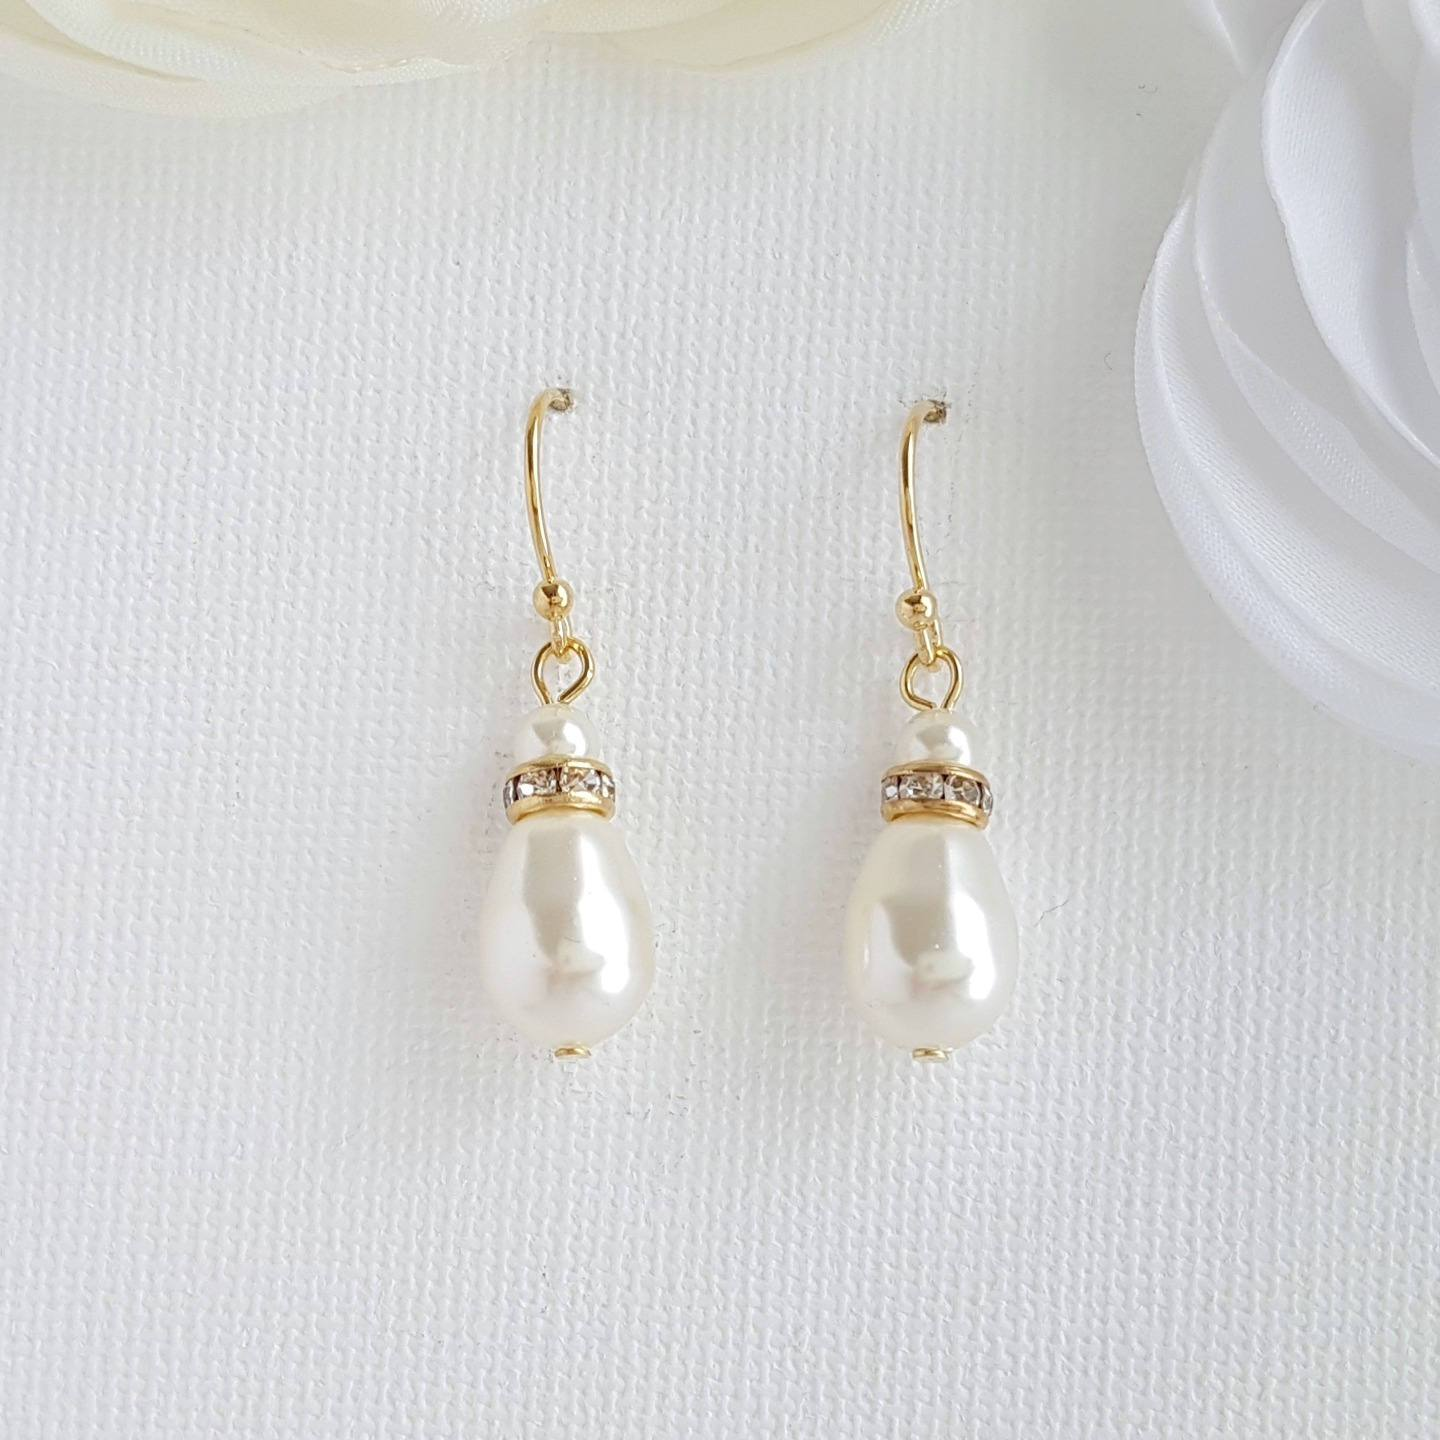 Simple Gold Earrings With Pearl Drops -June - PoetryDesigns